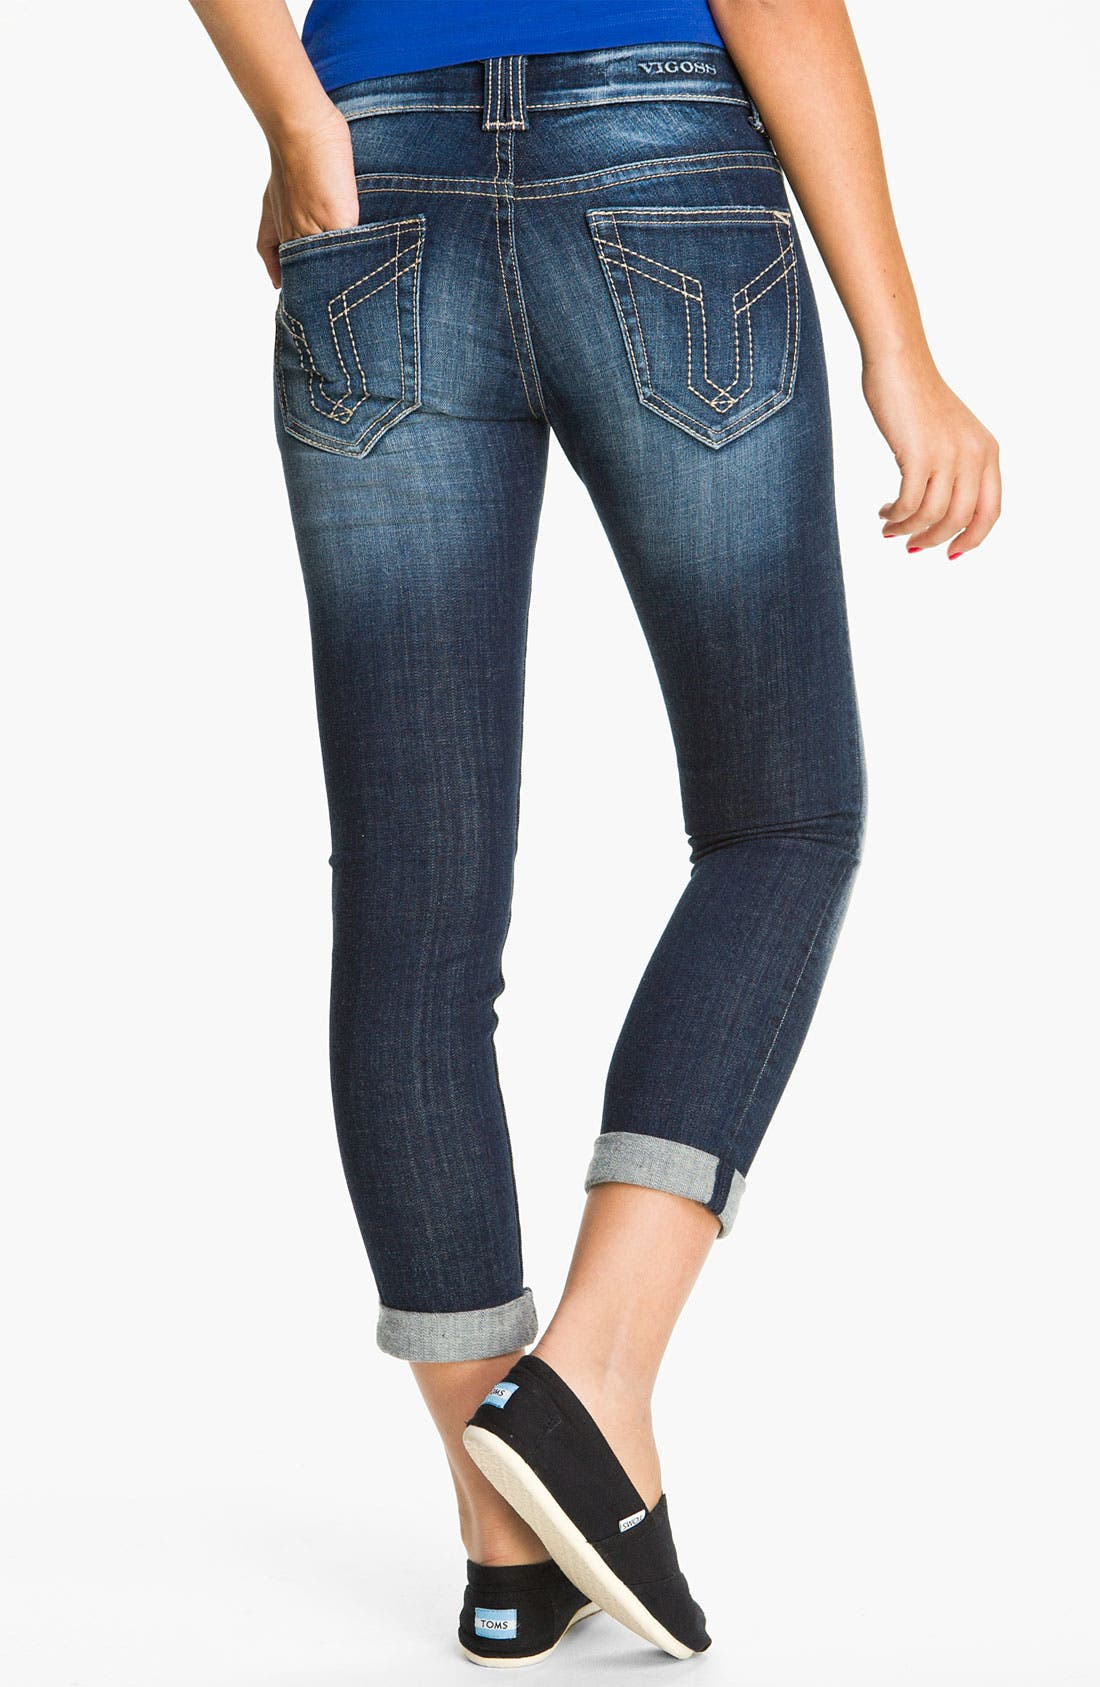 Main Image - Vigoss 'Thompson' Stretch Jeans (Dark) (Juniors)